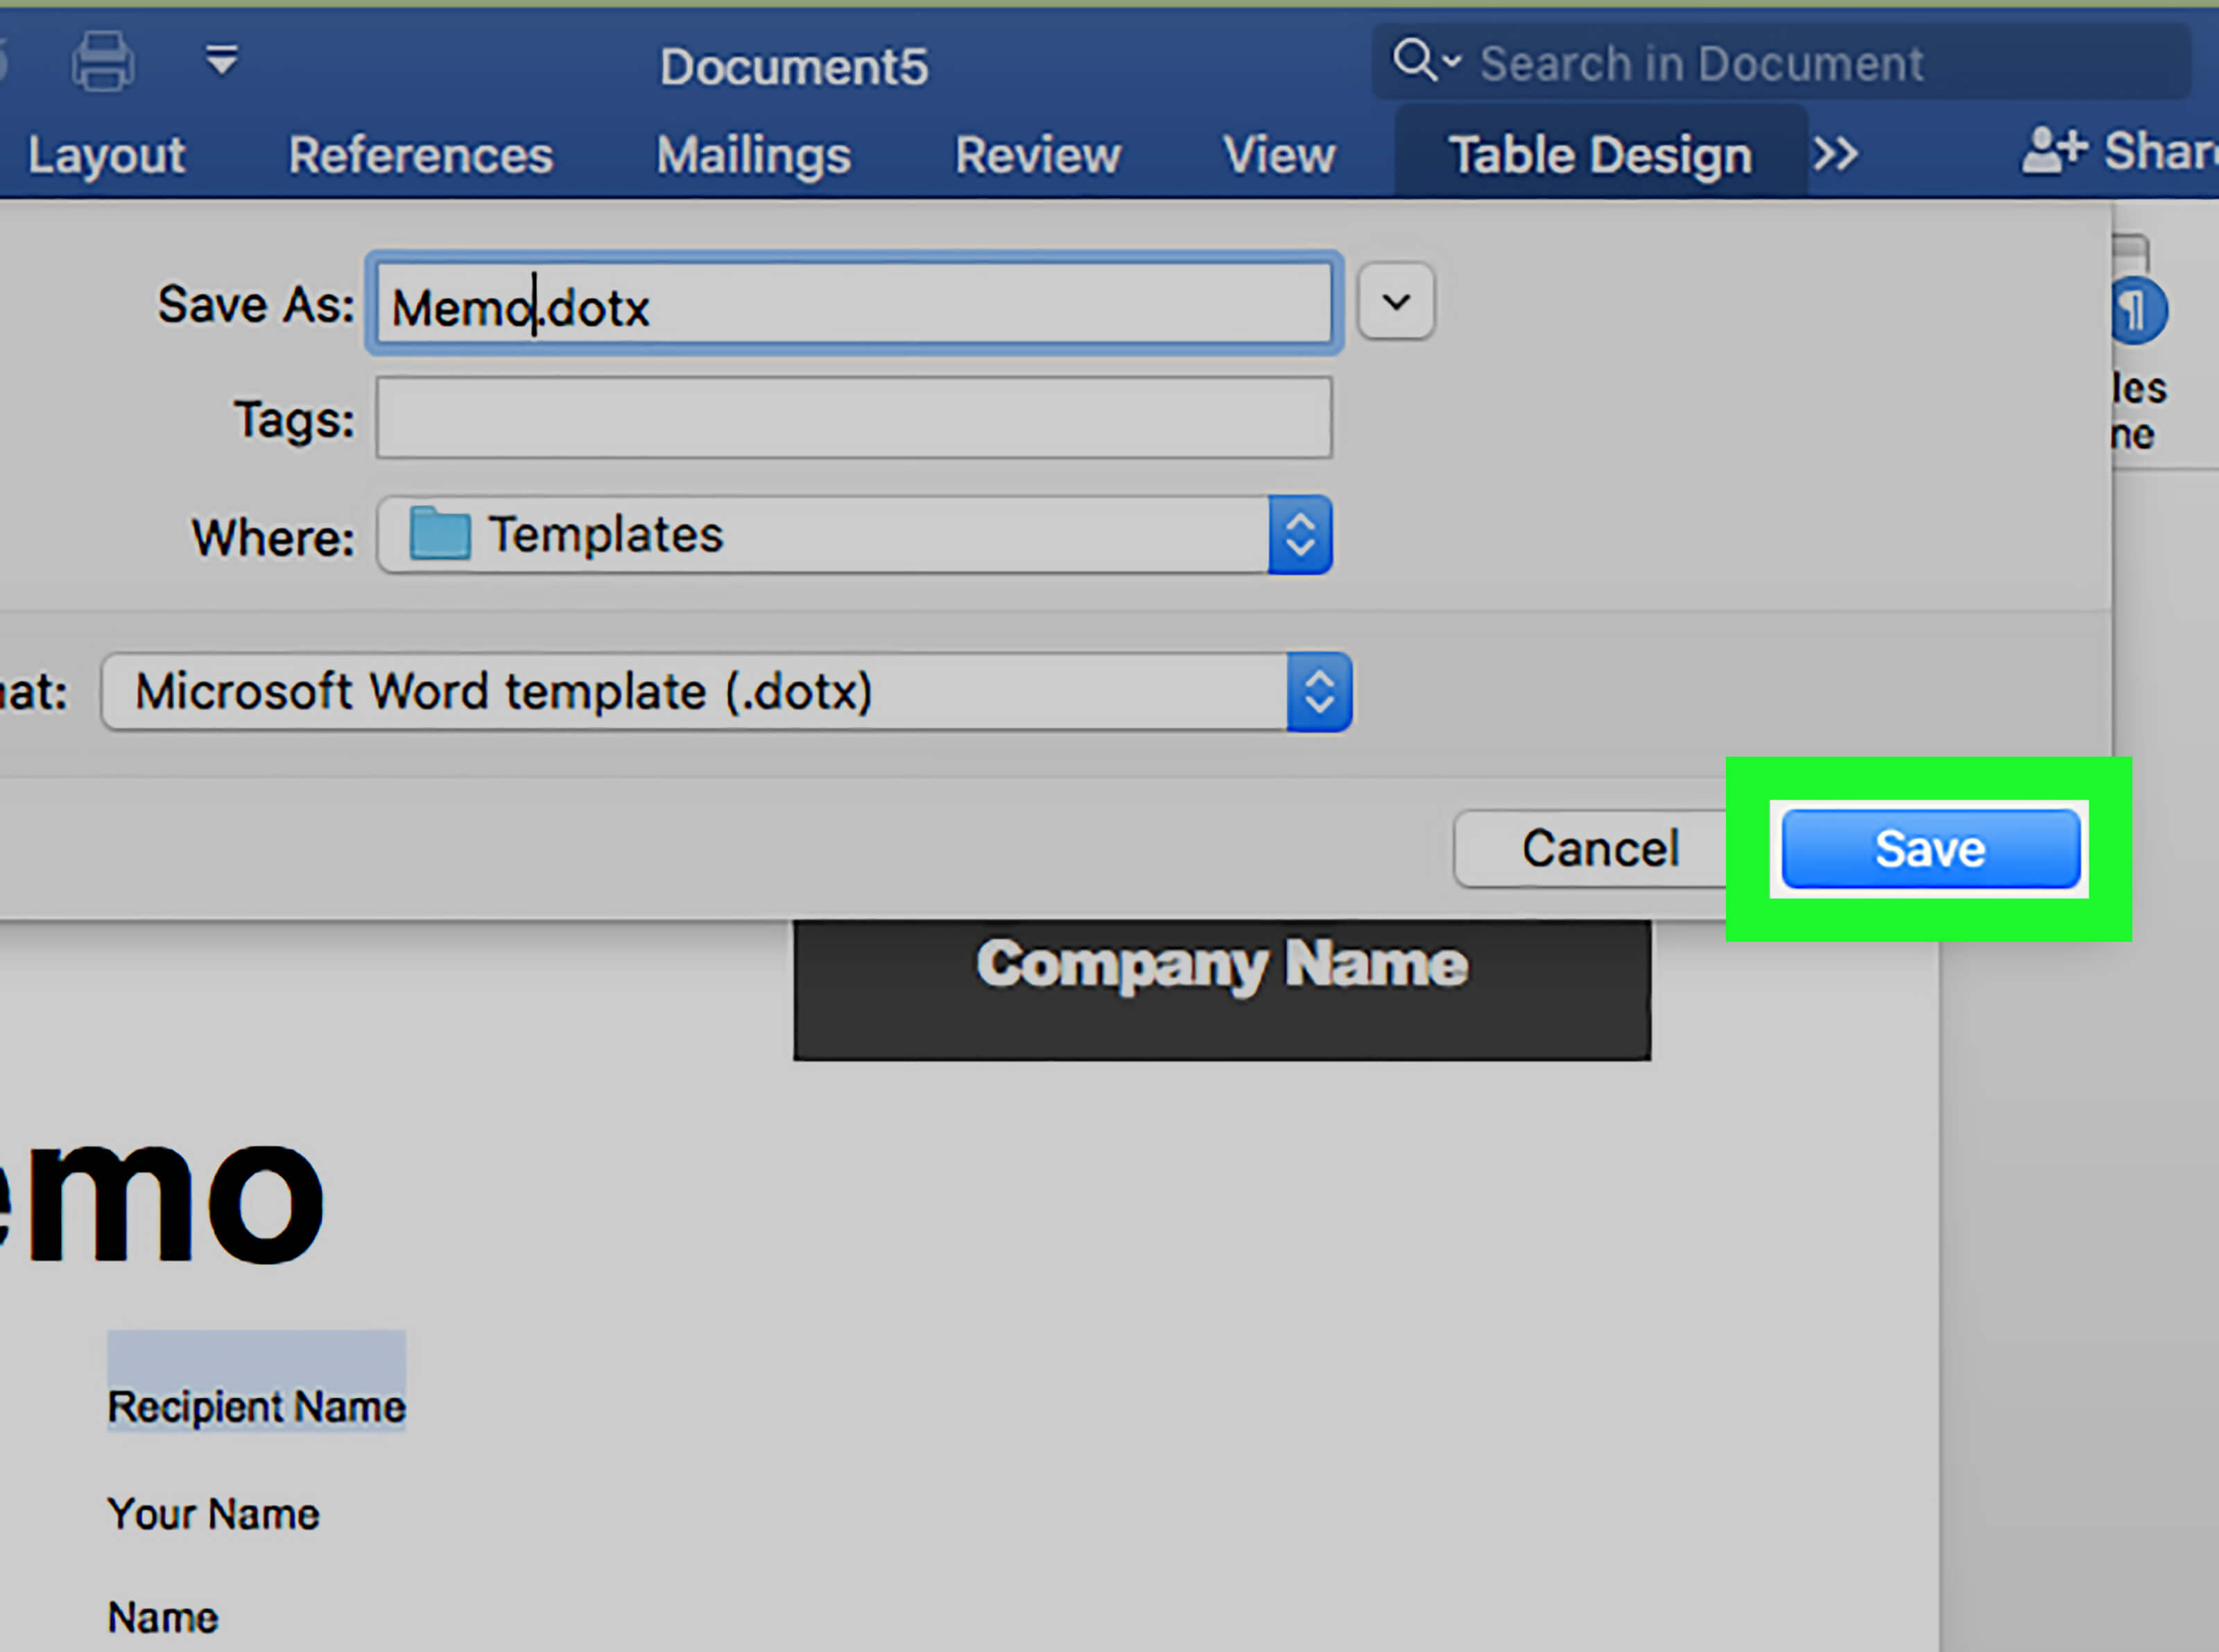 6 Ways To Use Document Templates In Microsoft Word - Wikihow with regard to Personal Check Template Word 2003